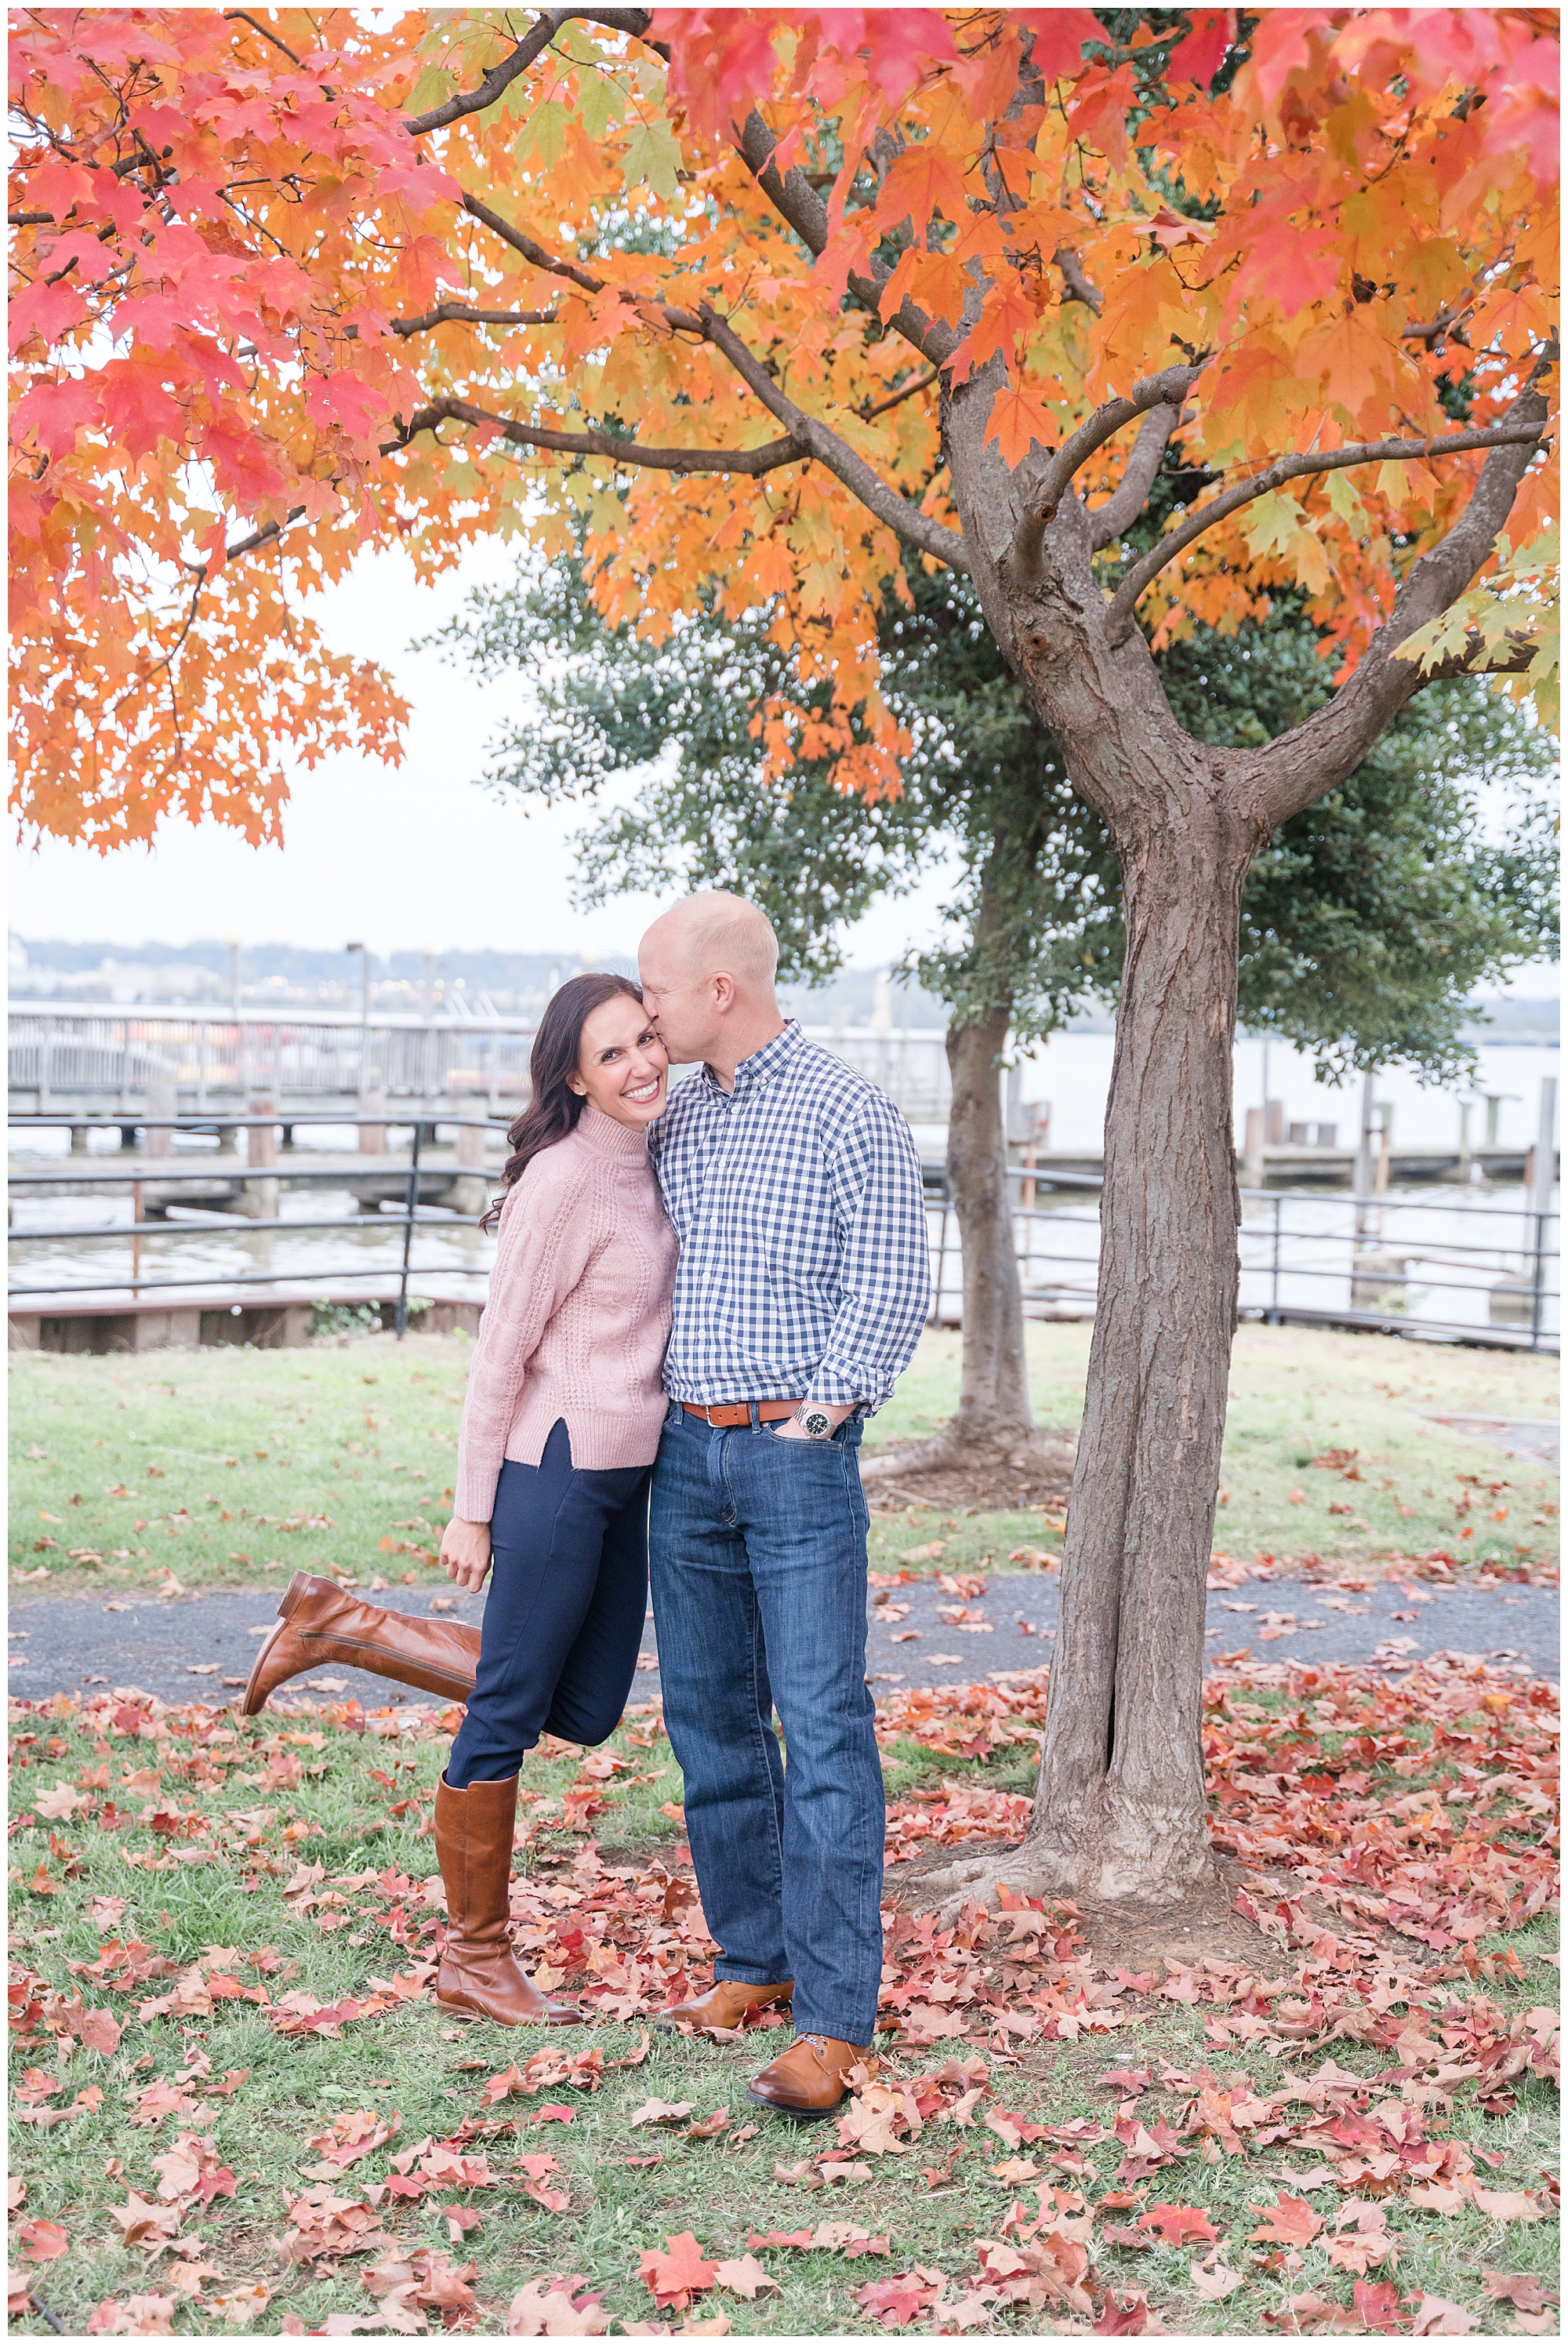 A husband kisses his wife on the cheek as she smiles at the camera while they're standing under a tree with bright red leaves during a fall photo session in Alexandria, Virginia.